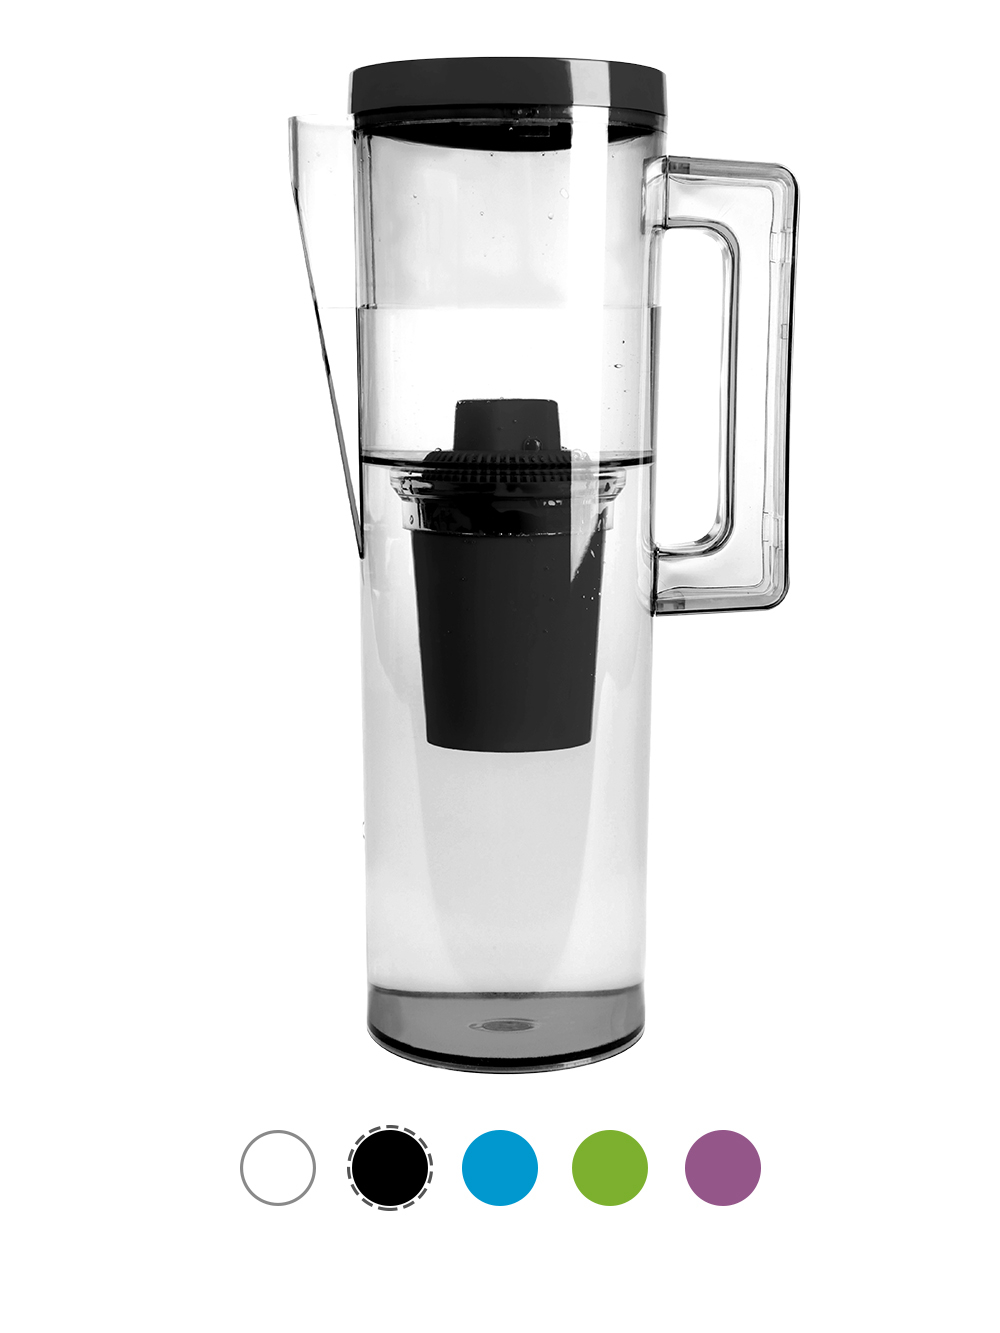 aok-106-water-filter-jug-5.jpg